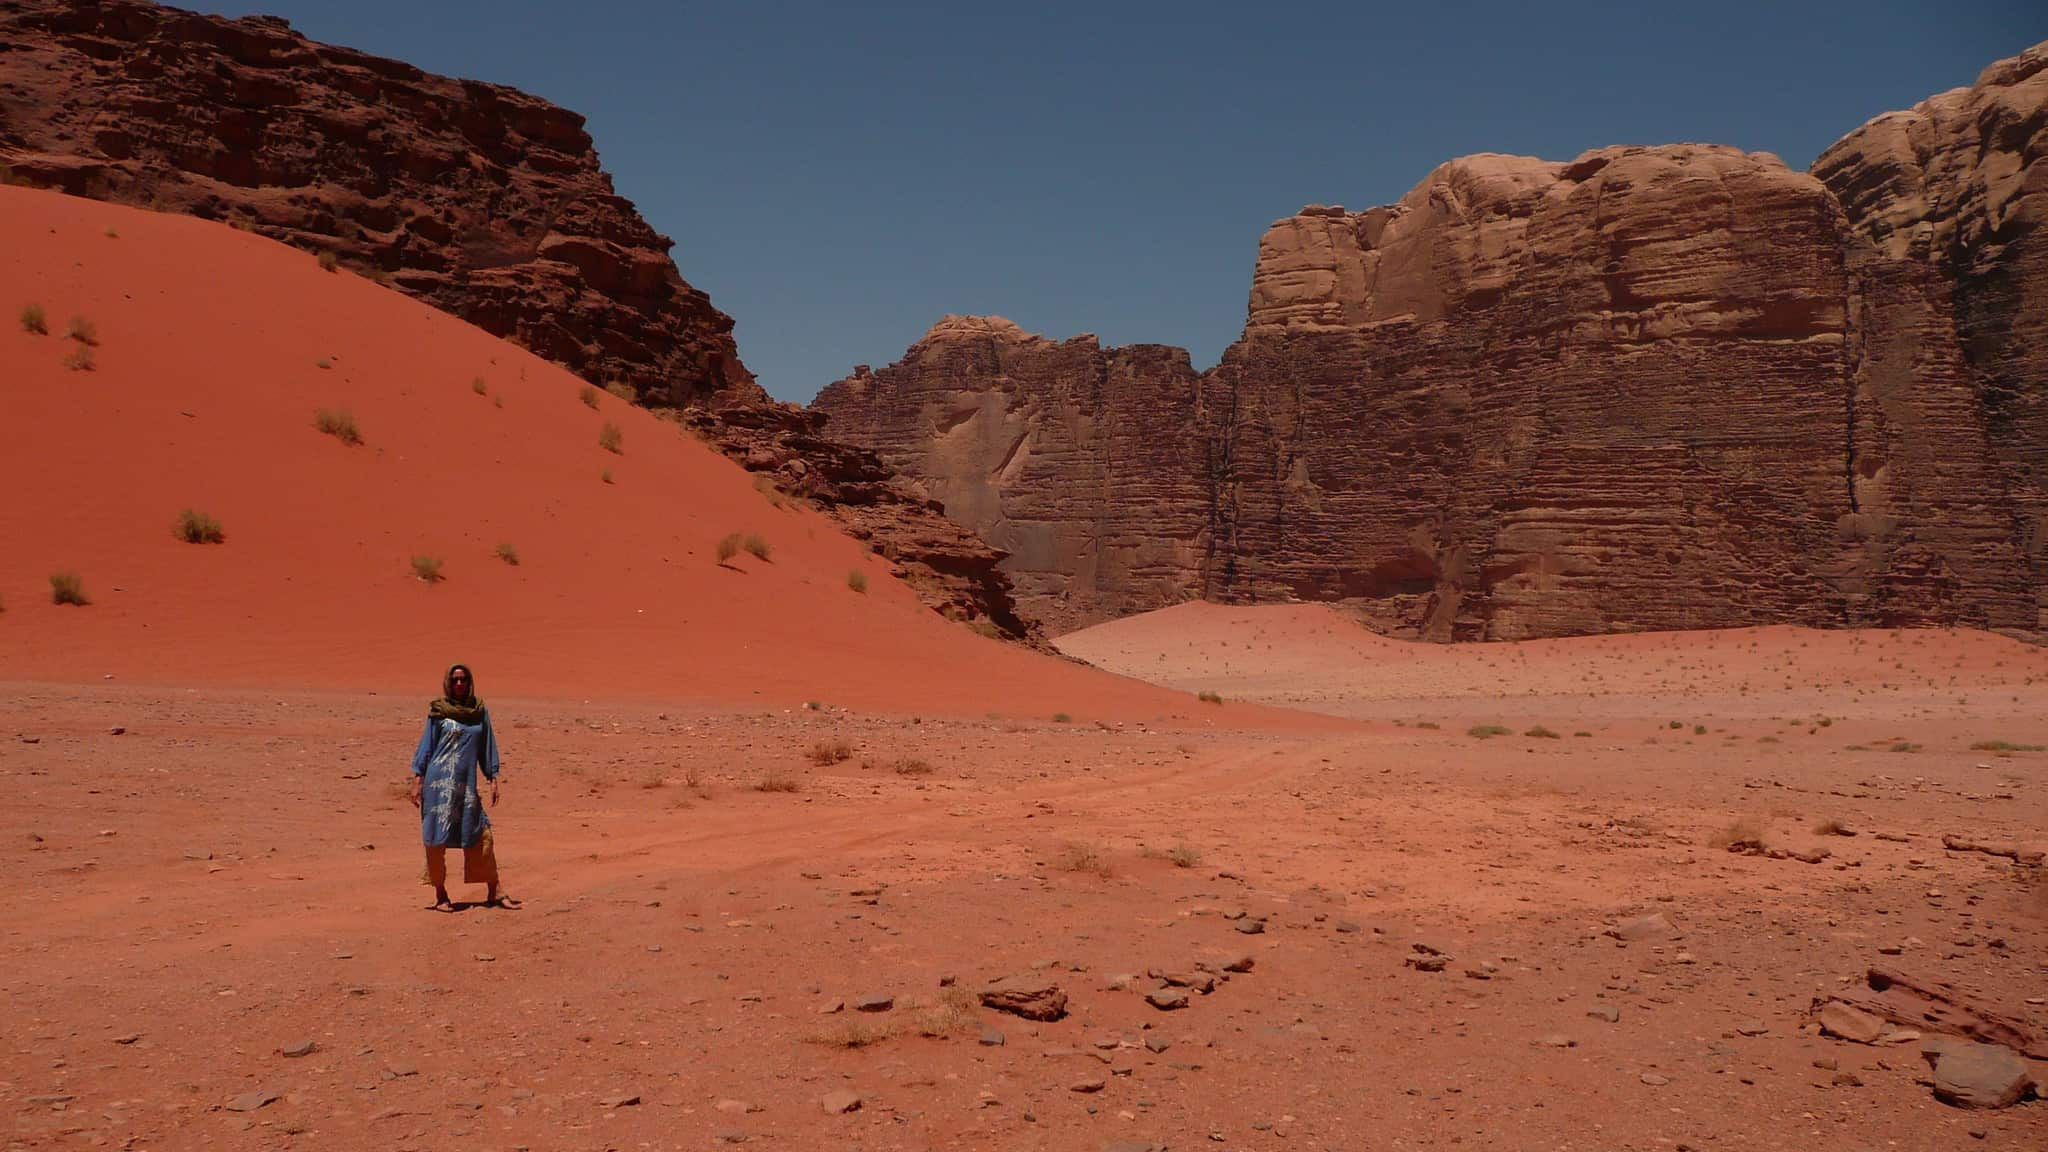 Photo of Lila alone in the Wadi Rum desert